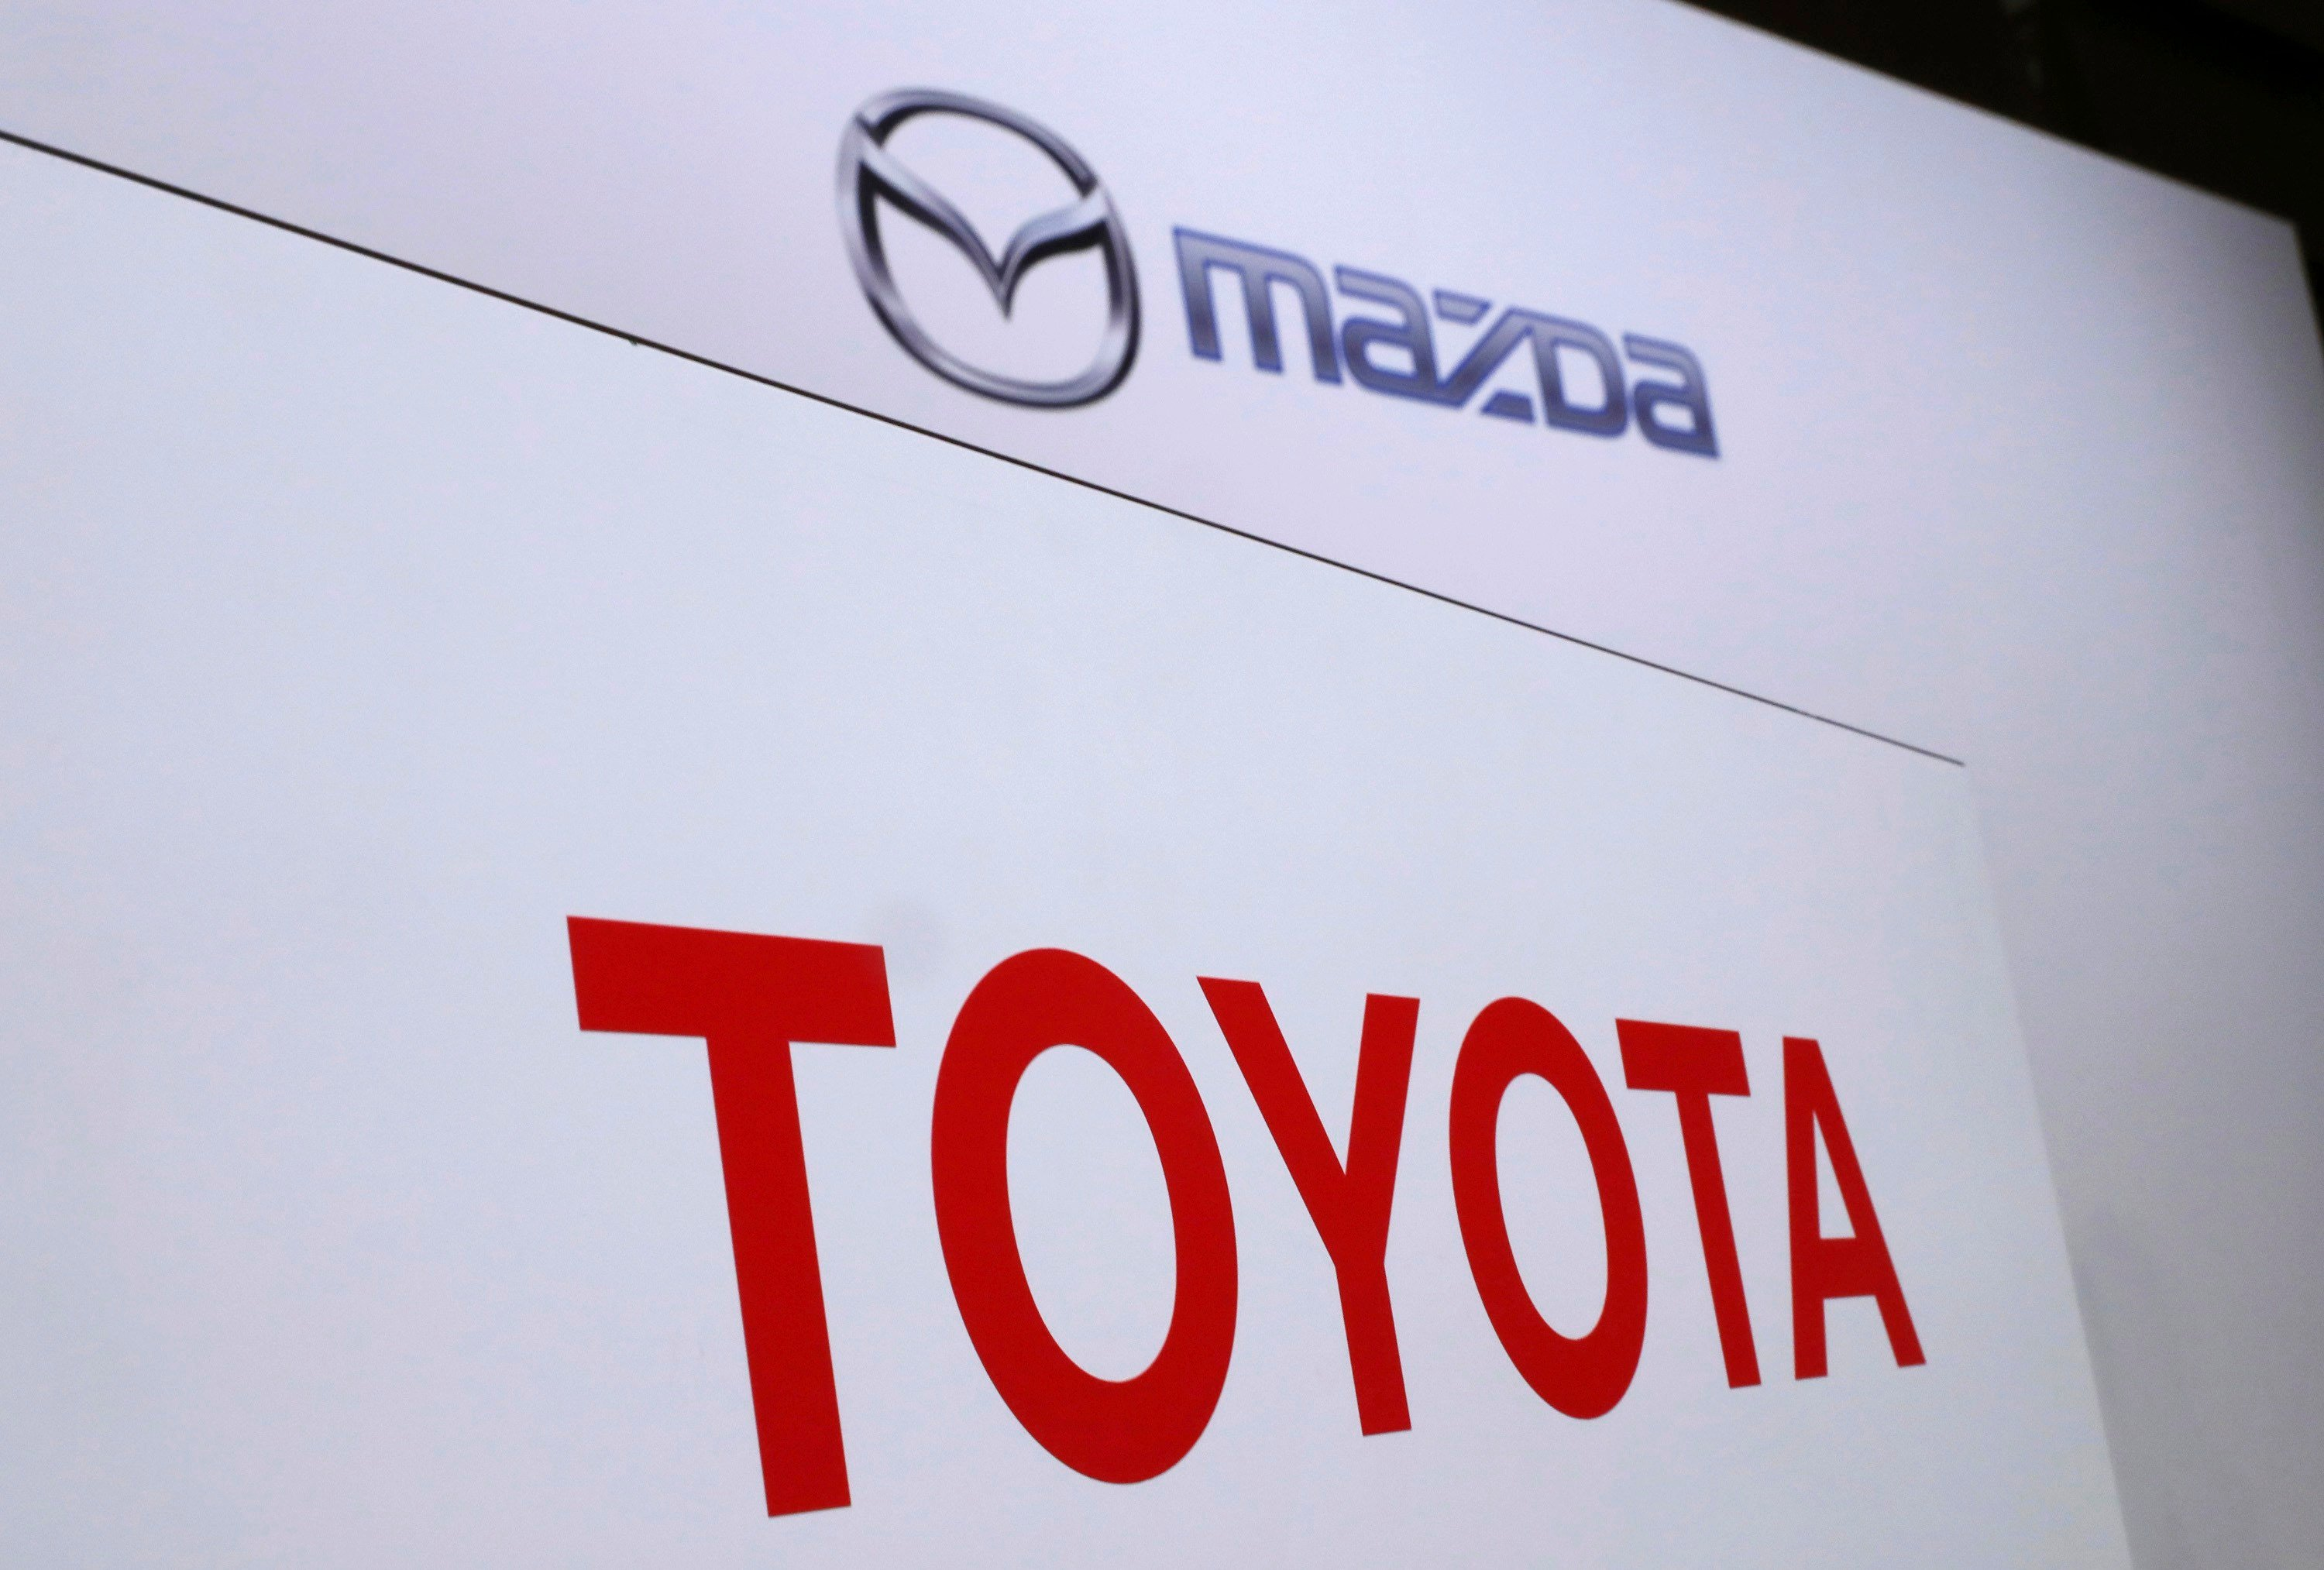 Toyota and Mazda have picked Alabama as the site of a new $1.6 billion joint-venture auto manufacturing plant, a person briefed on the decision said Tuesday, Jan. 9, 2018. (AP Photo/Eugene Hoshiko, File)